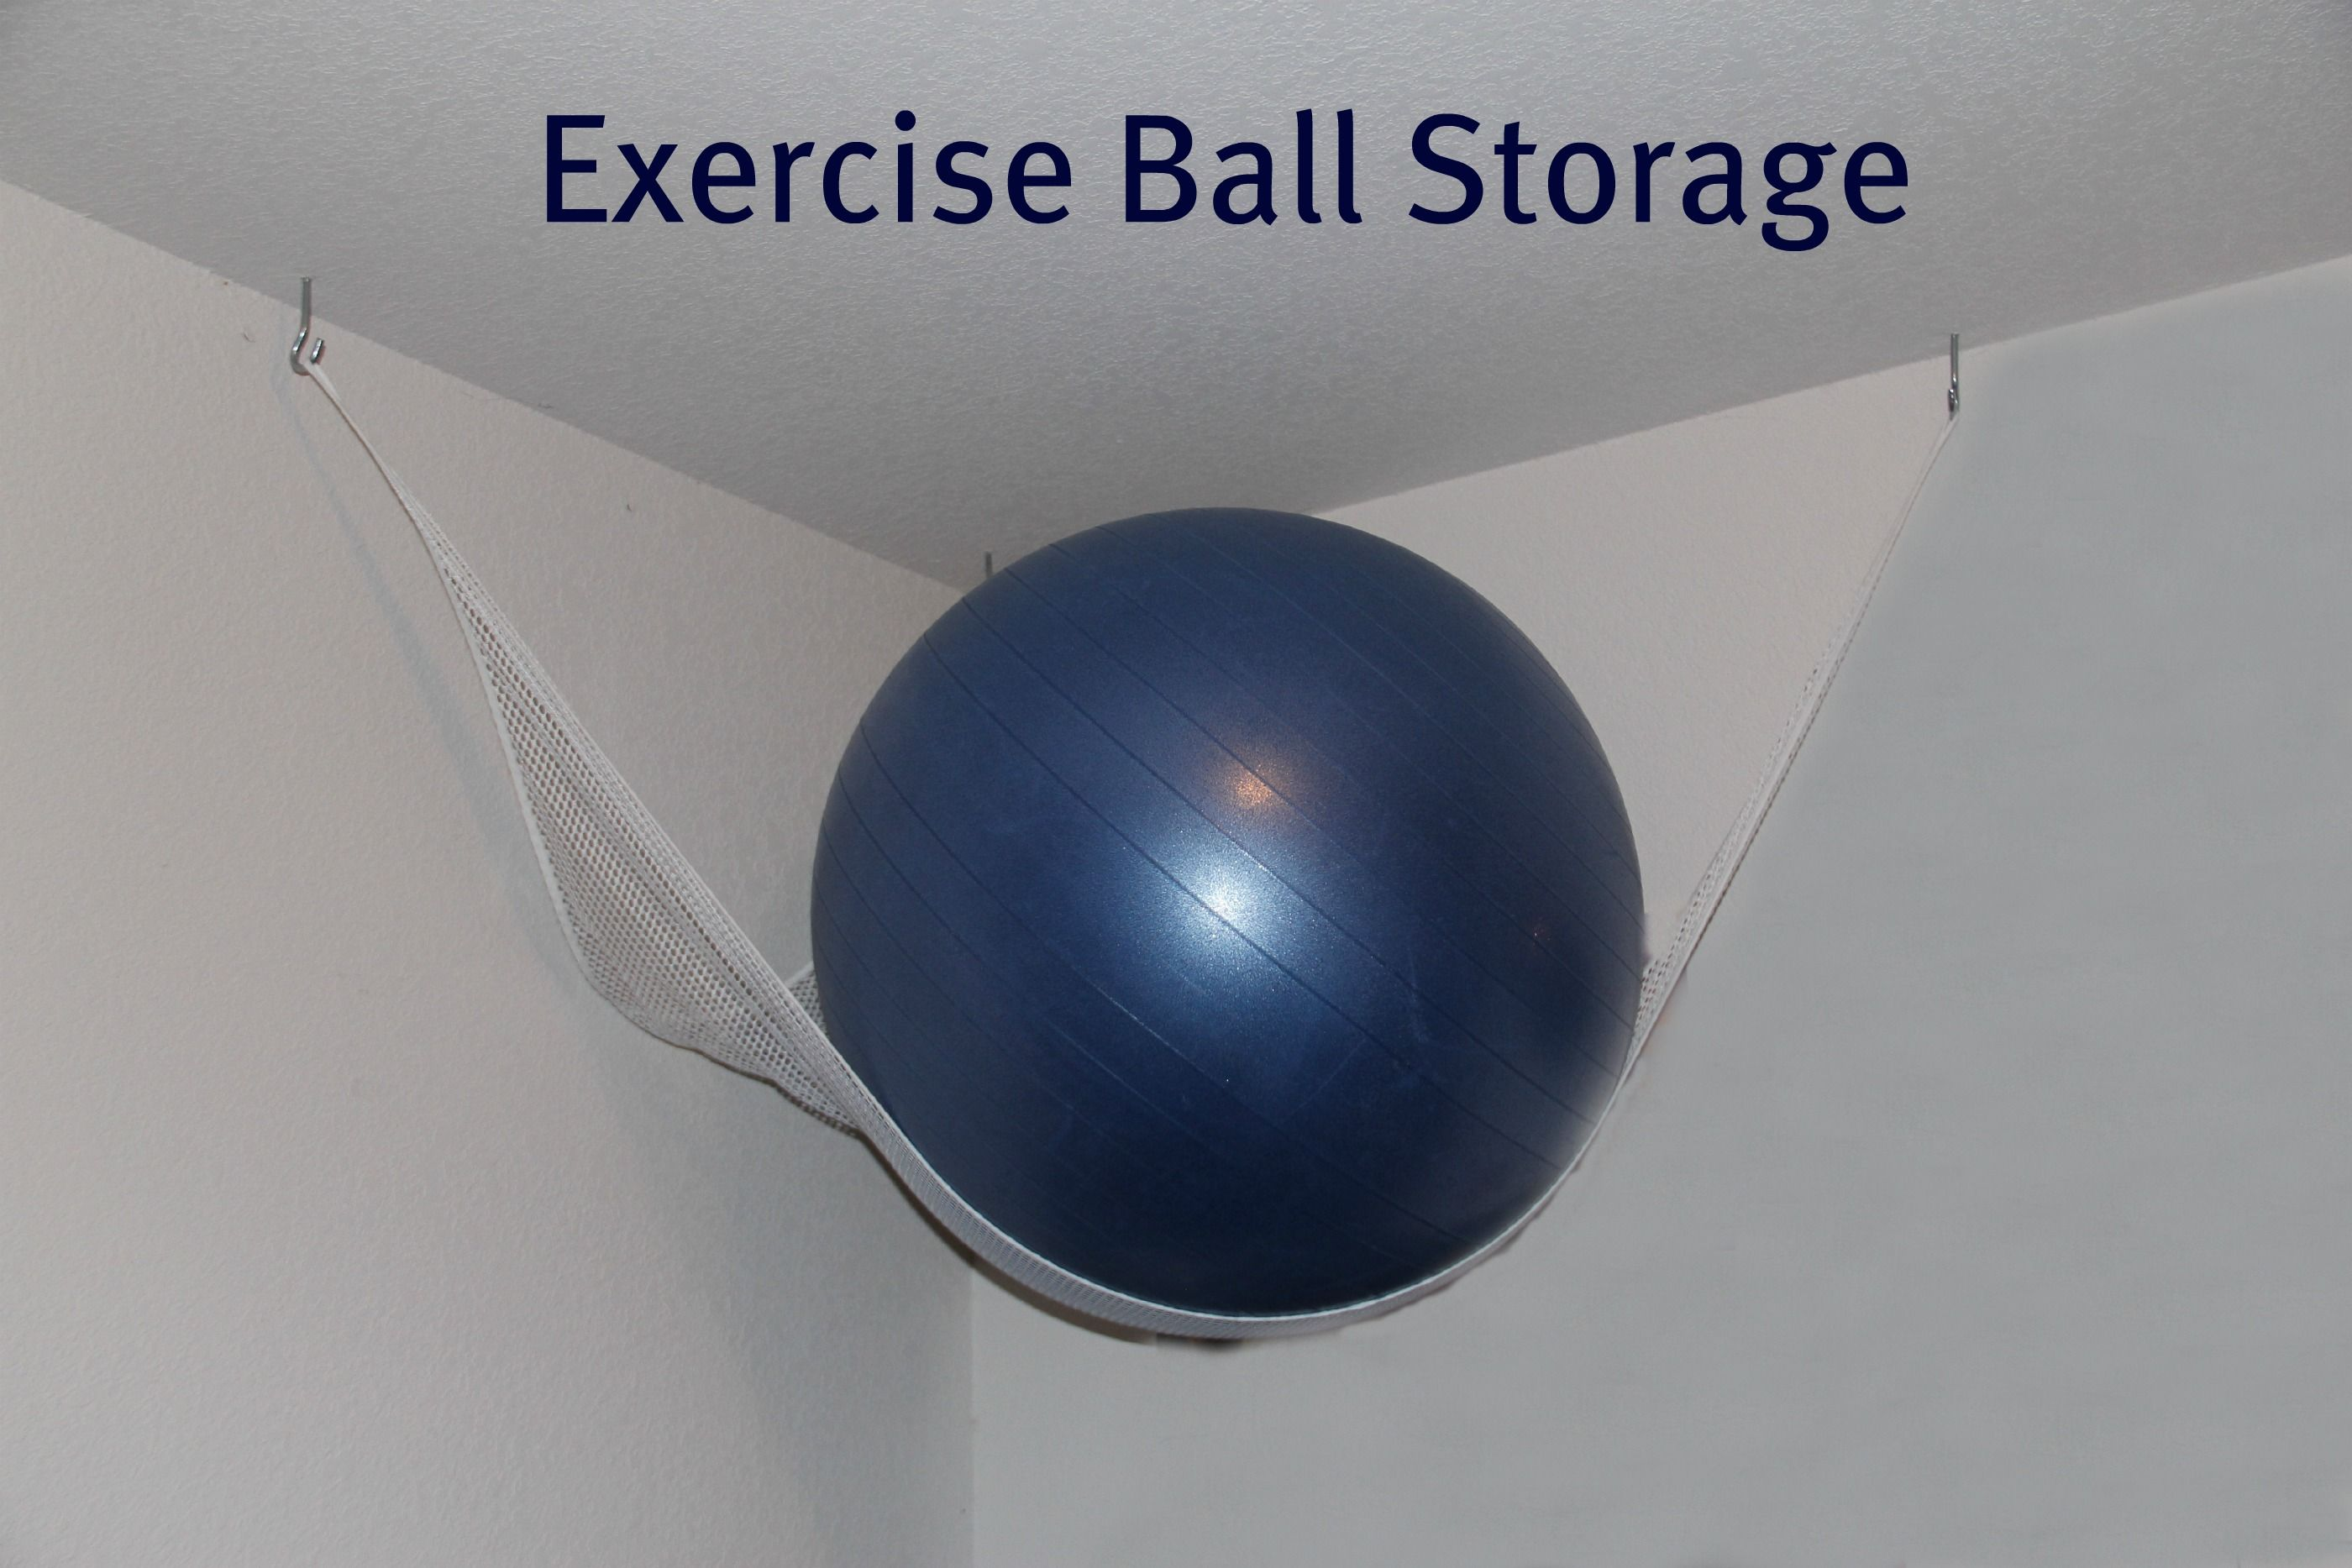 cd828d8a03c95dbd4ca962d3737f3fa3 - How Do I Know What Size Stability Ball To Get